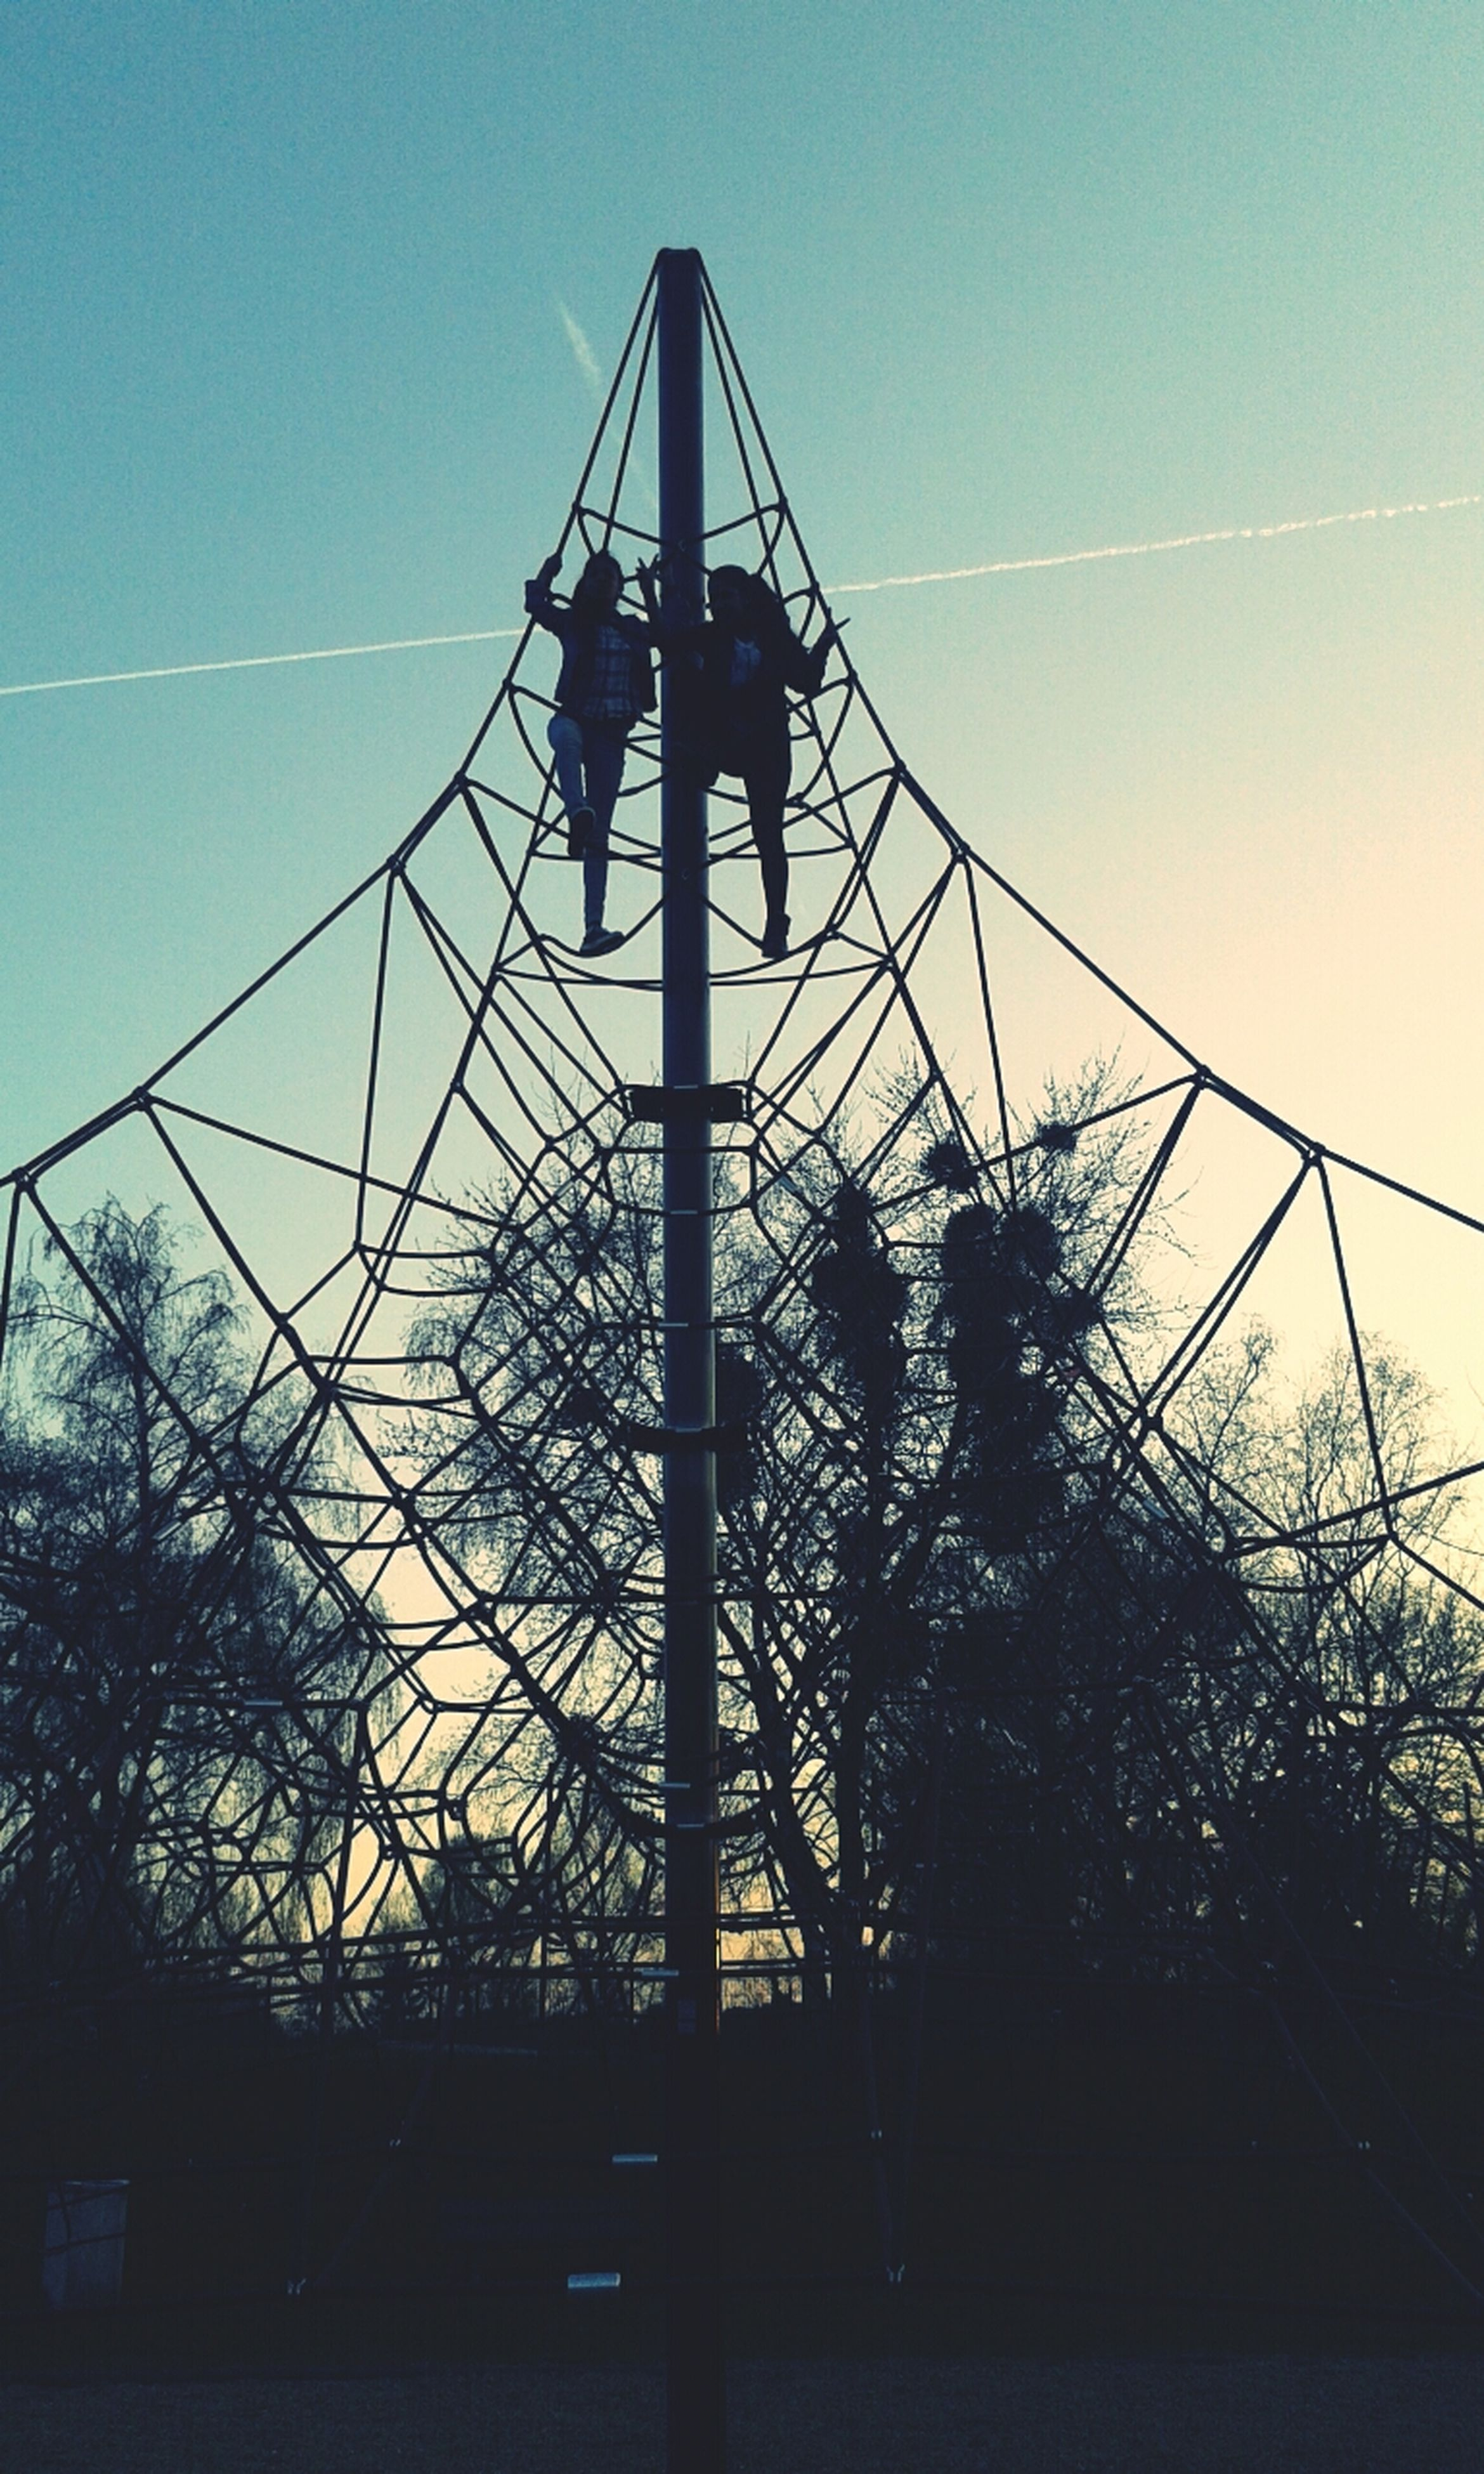 low angle view, connection, clear sky, silhouette, sky, built structure, blue, electricity pylon, tree, metal, technology, electricity, bridge - man made structure, architecture, power line, engineering, dusk, outdoors, sunset, sunlight